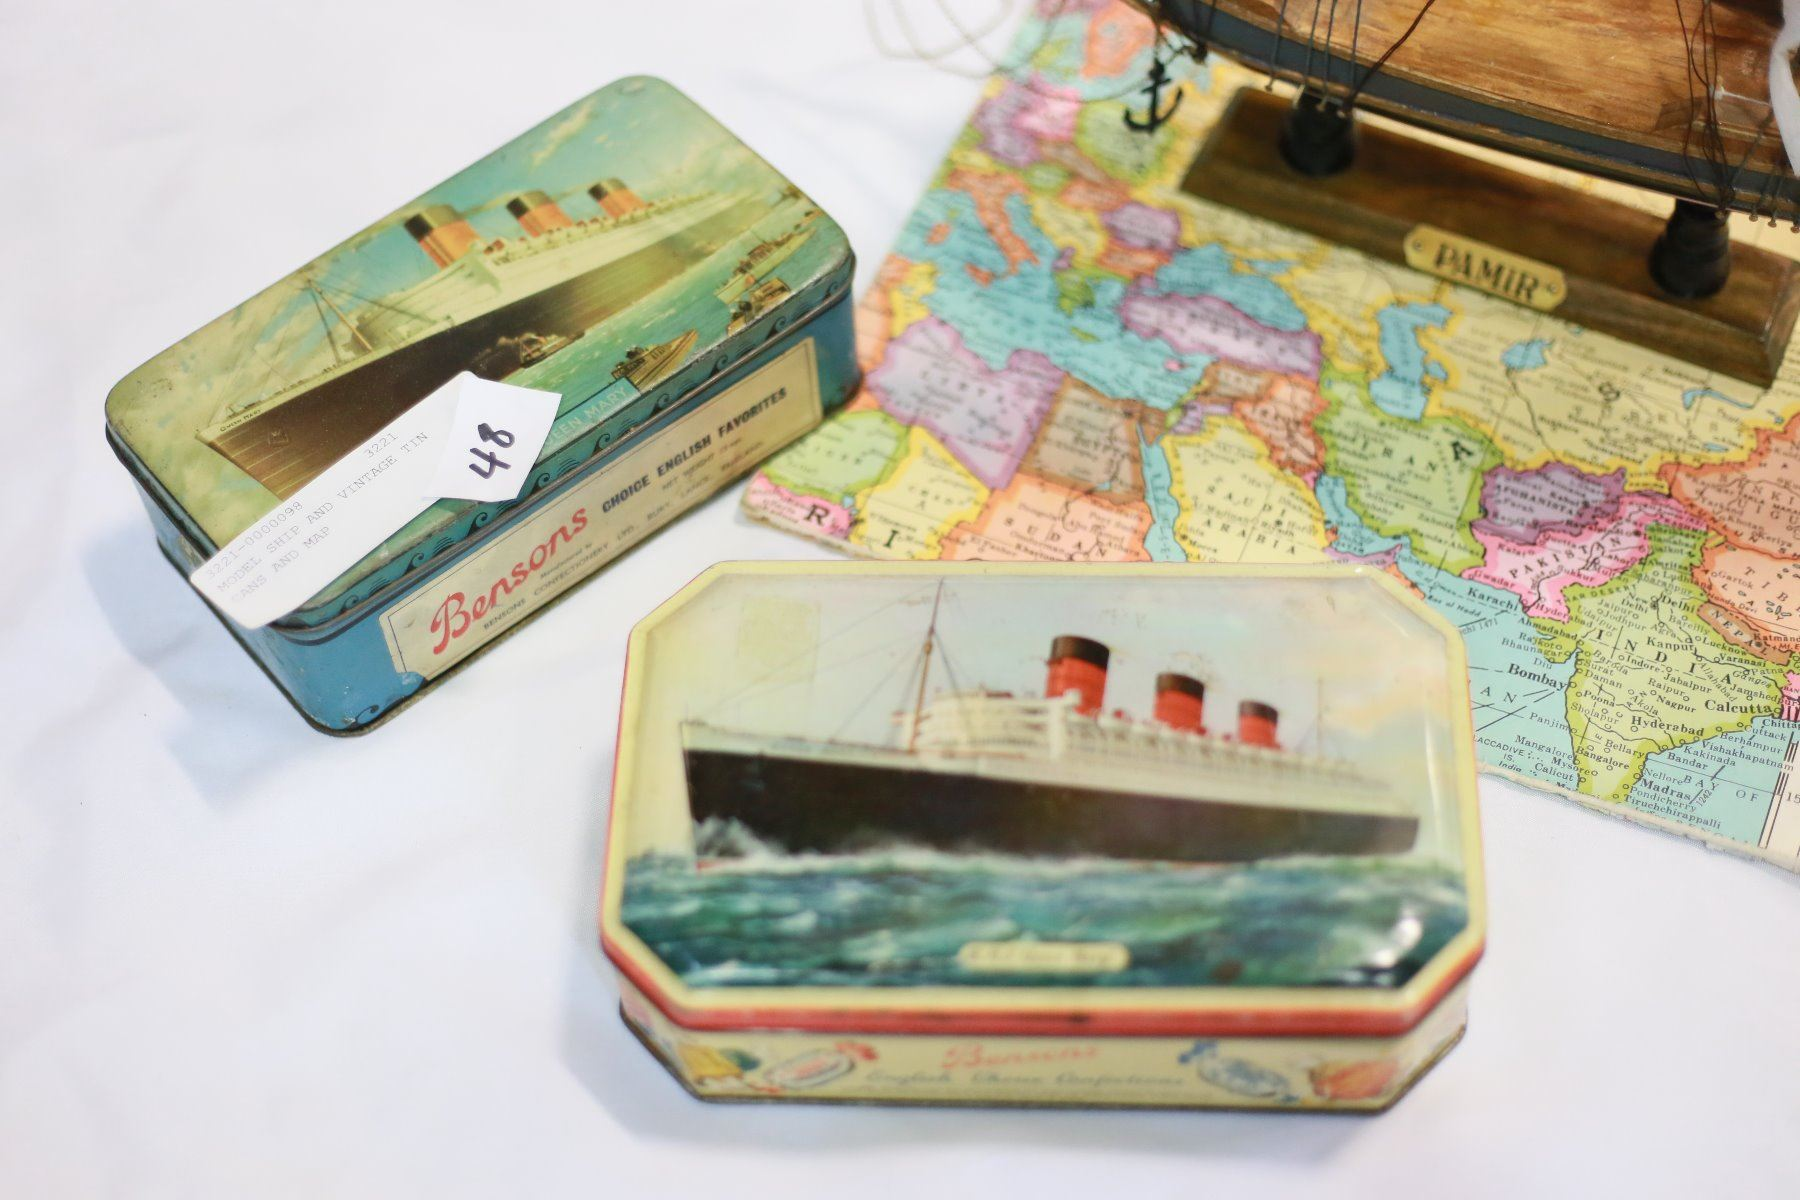 MODEL SHIP AND VINTAGE TIN CANS AND MAP